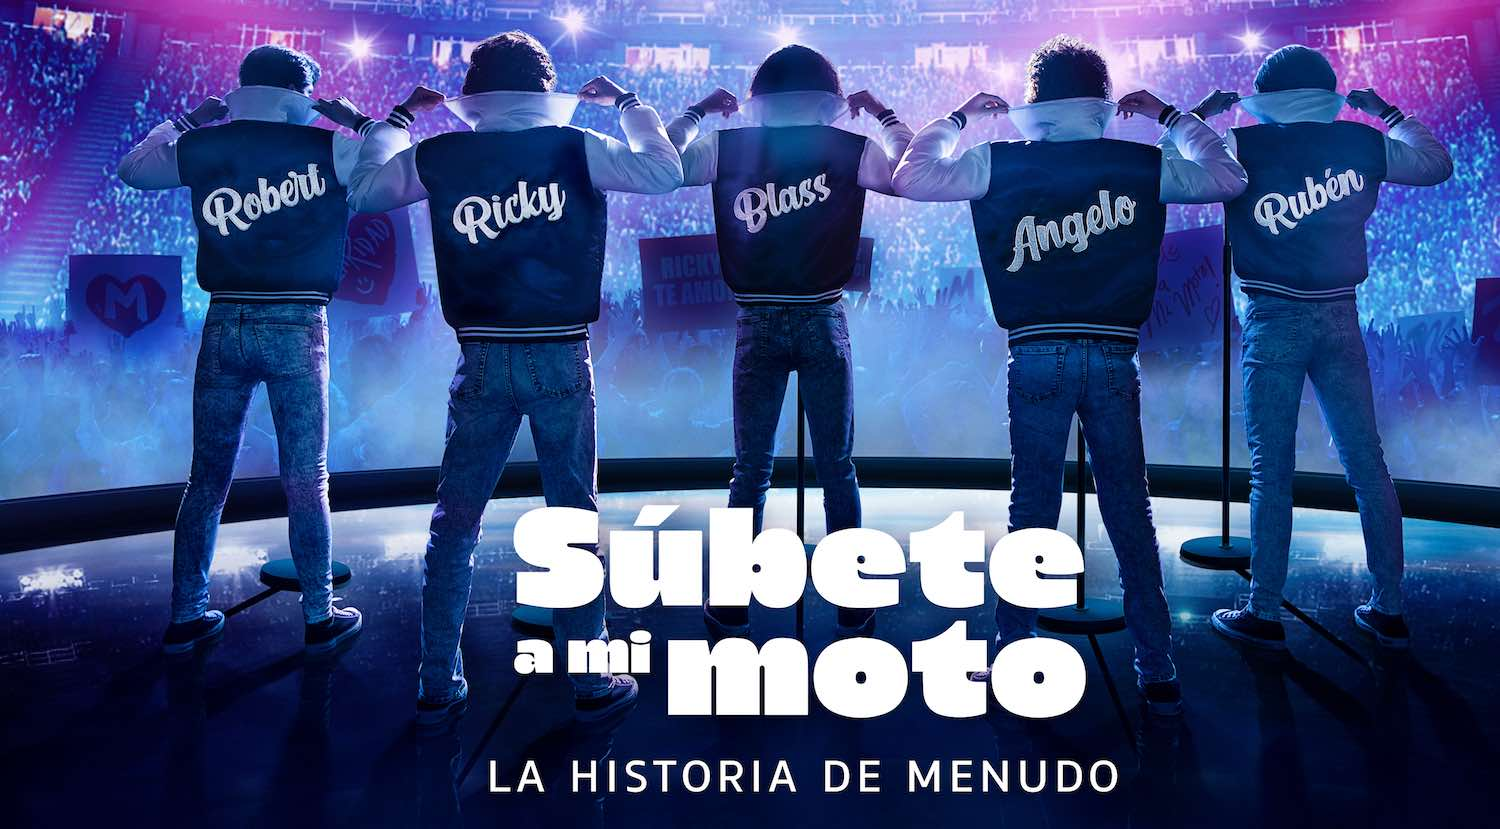 Súbete a mi moto Menudo Amazon Prime Video